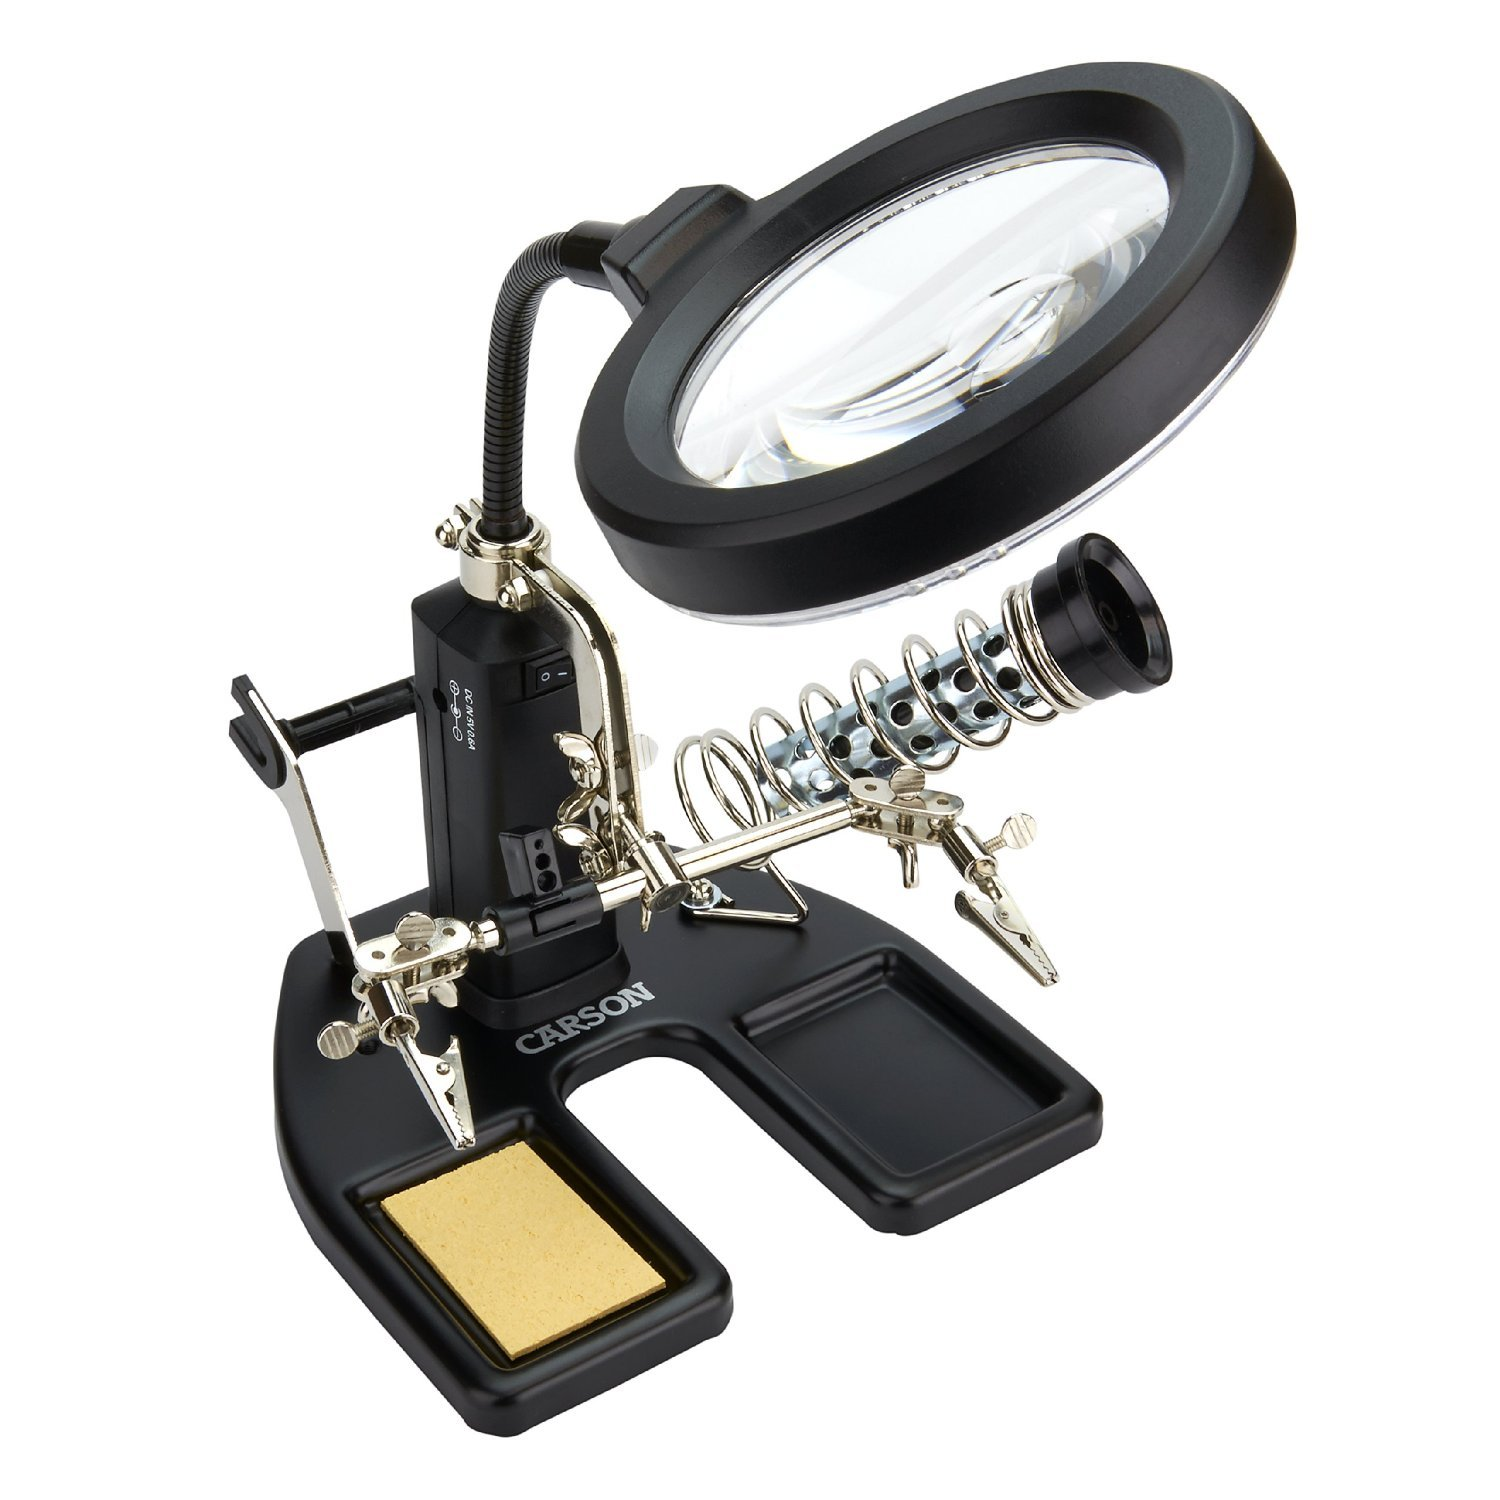 Carson SolderMag LED Lighted 1.75x Soldering Magnifier with 4.5x Spot Lens CP-50UK